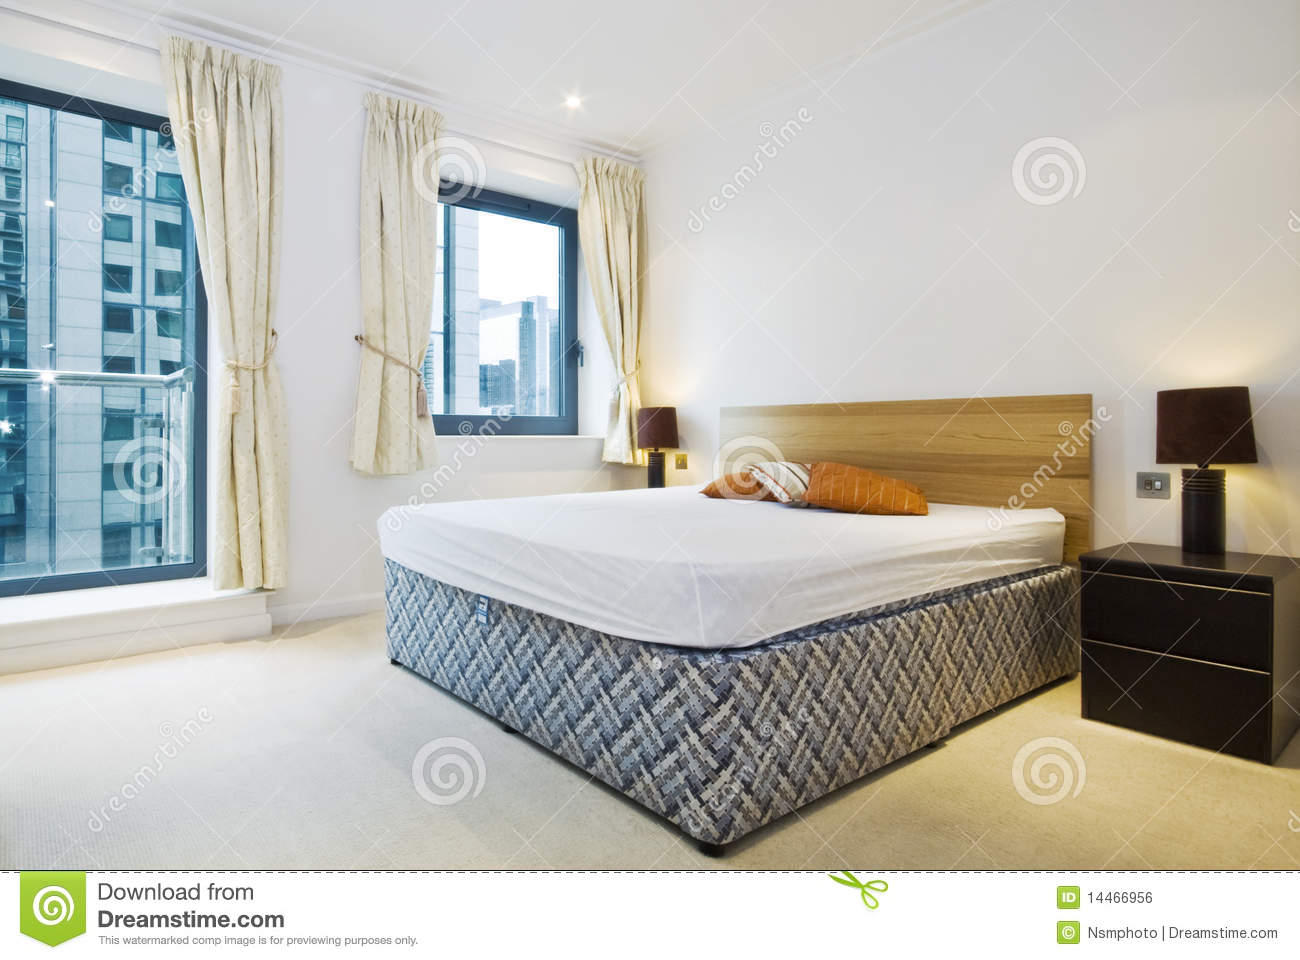 modern double bedroom with king size bed royalty free stock image image 14466956. Black Bedroom Furniture Sets. Home Design Ideas